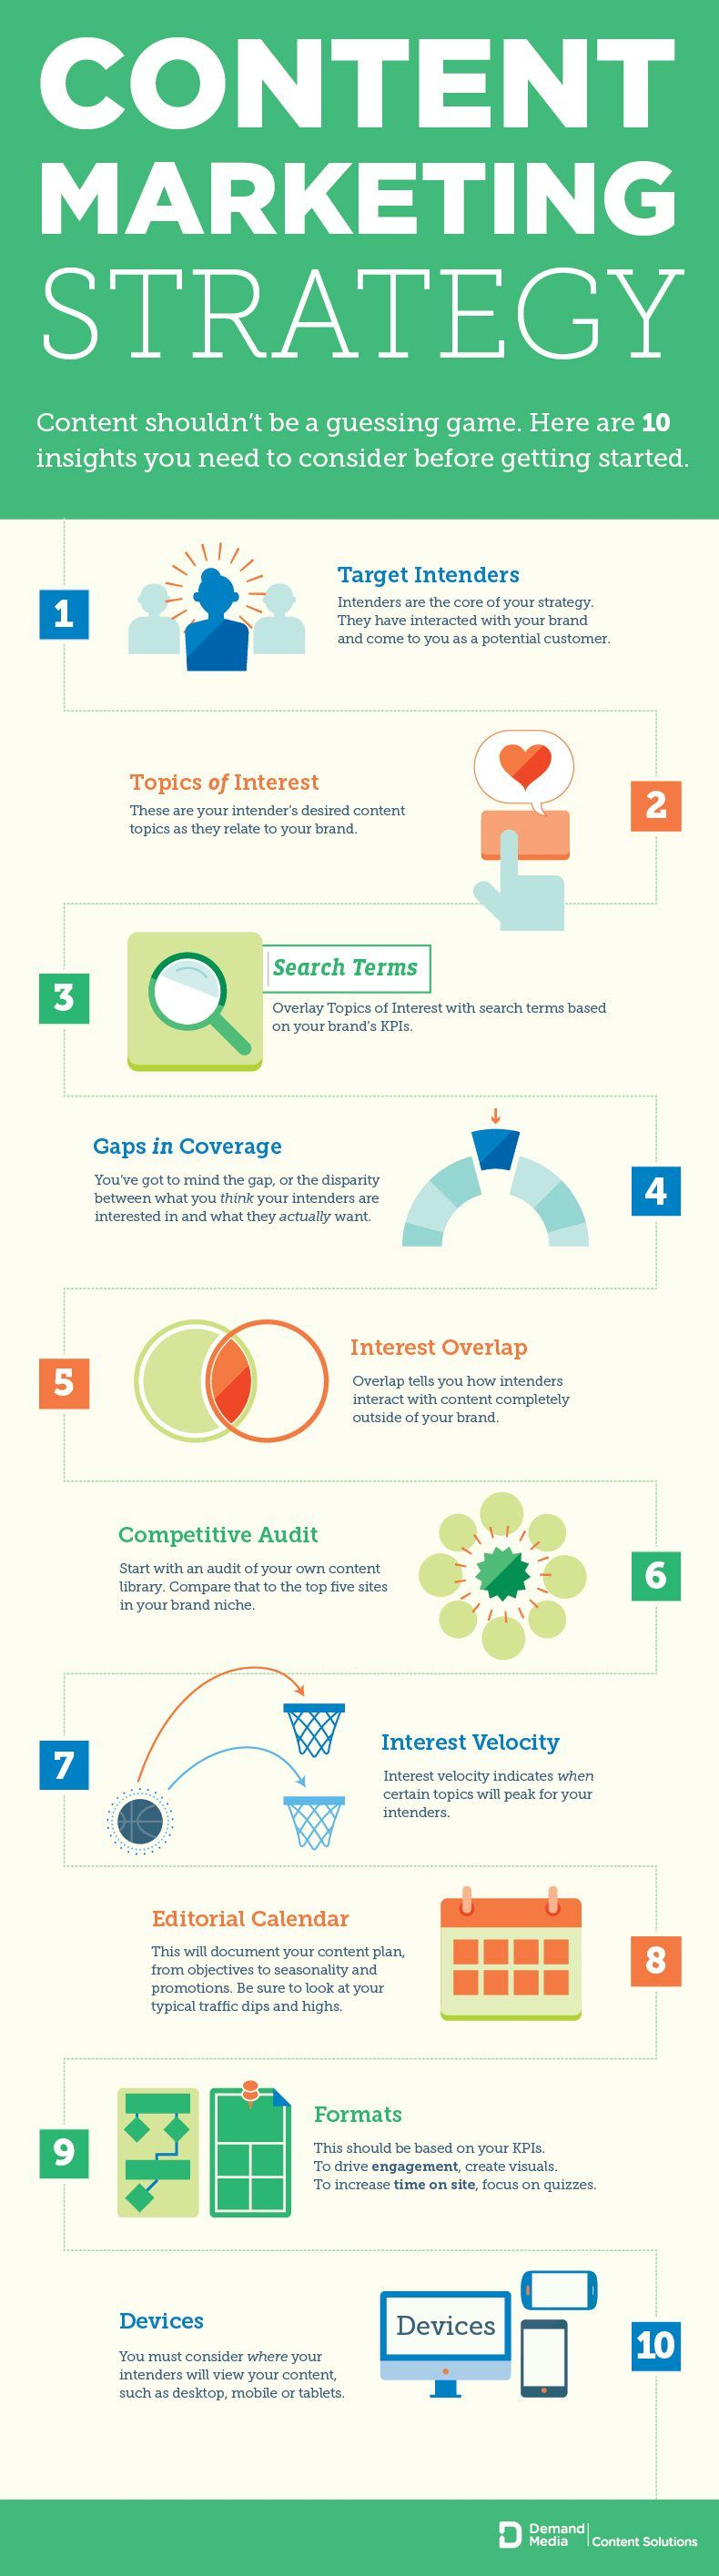 Aspects For Your Content Marketing Campaign Infographic